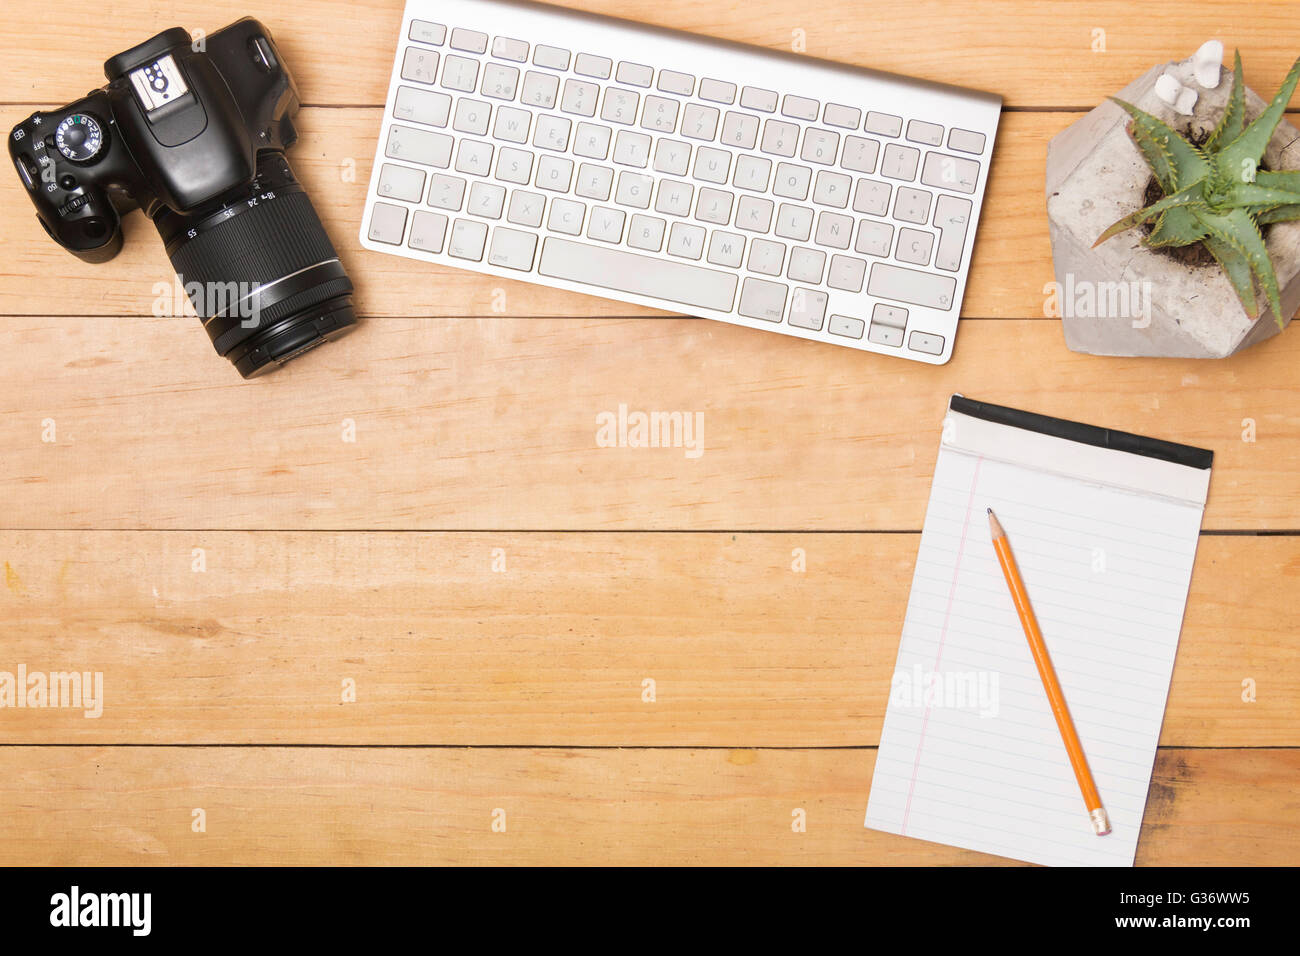 office work desks. office desk work flat lay creative working stock photo desks